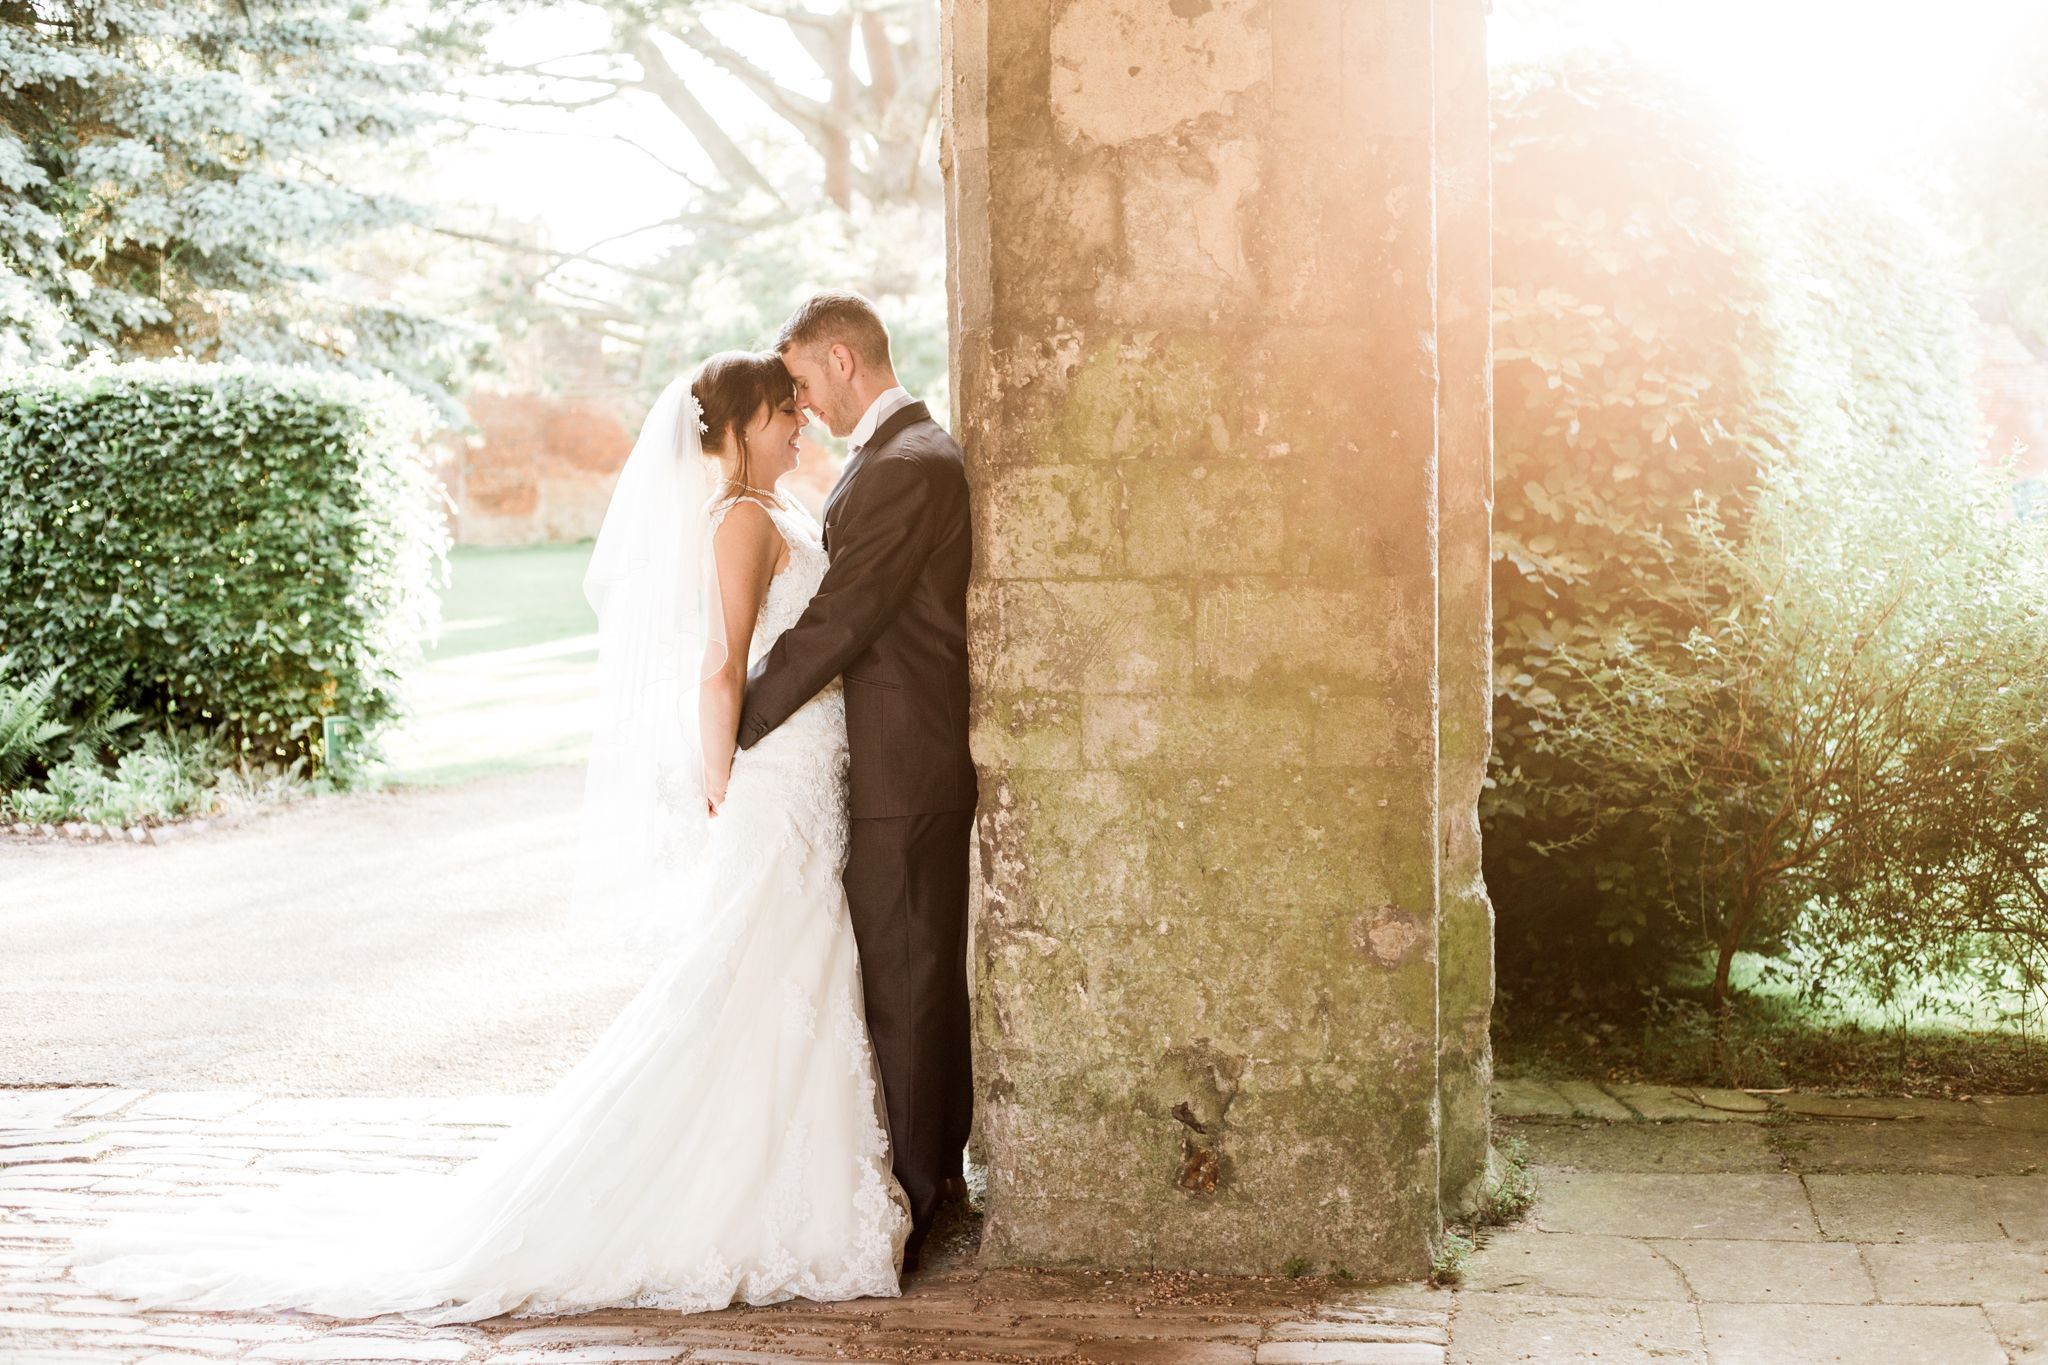 Chichester Cathedral wedding - the venue is out of this world!